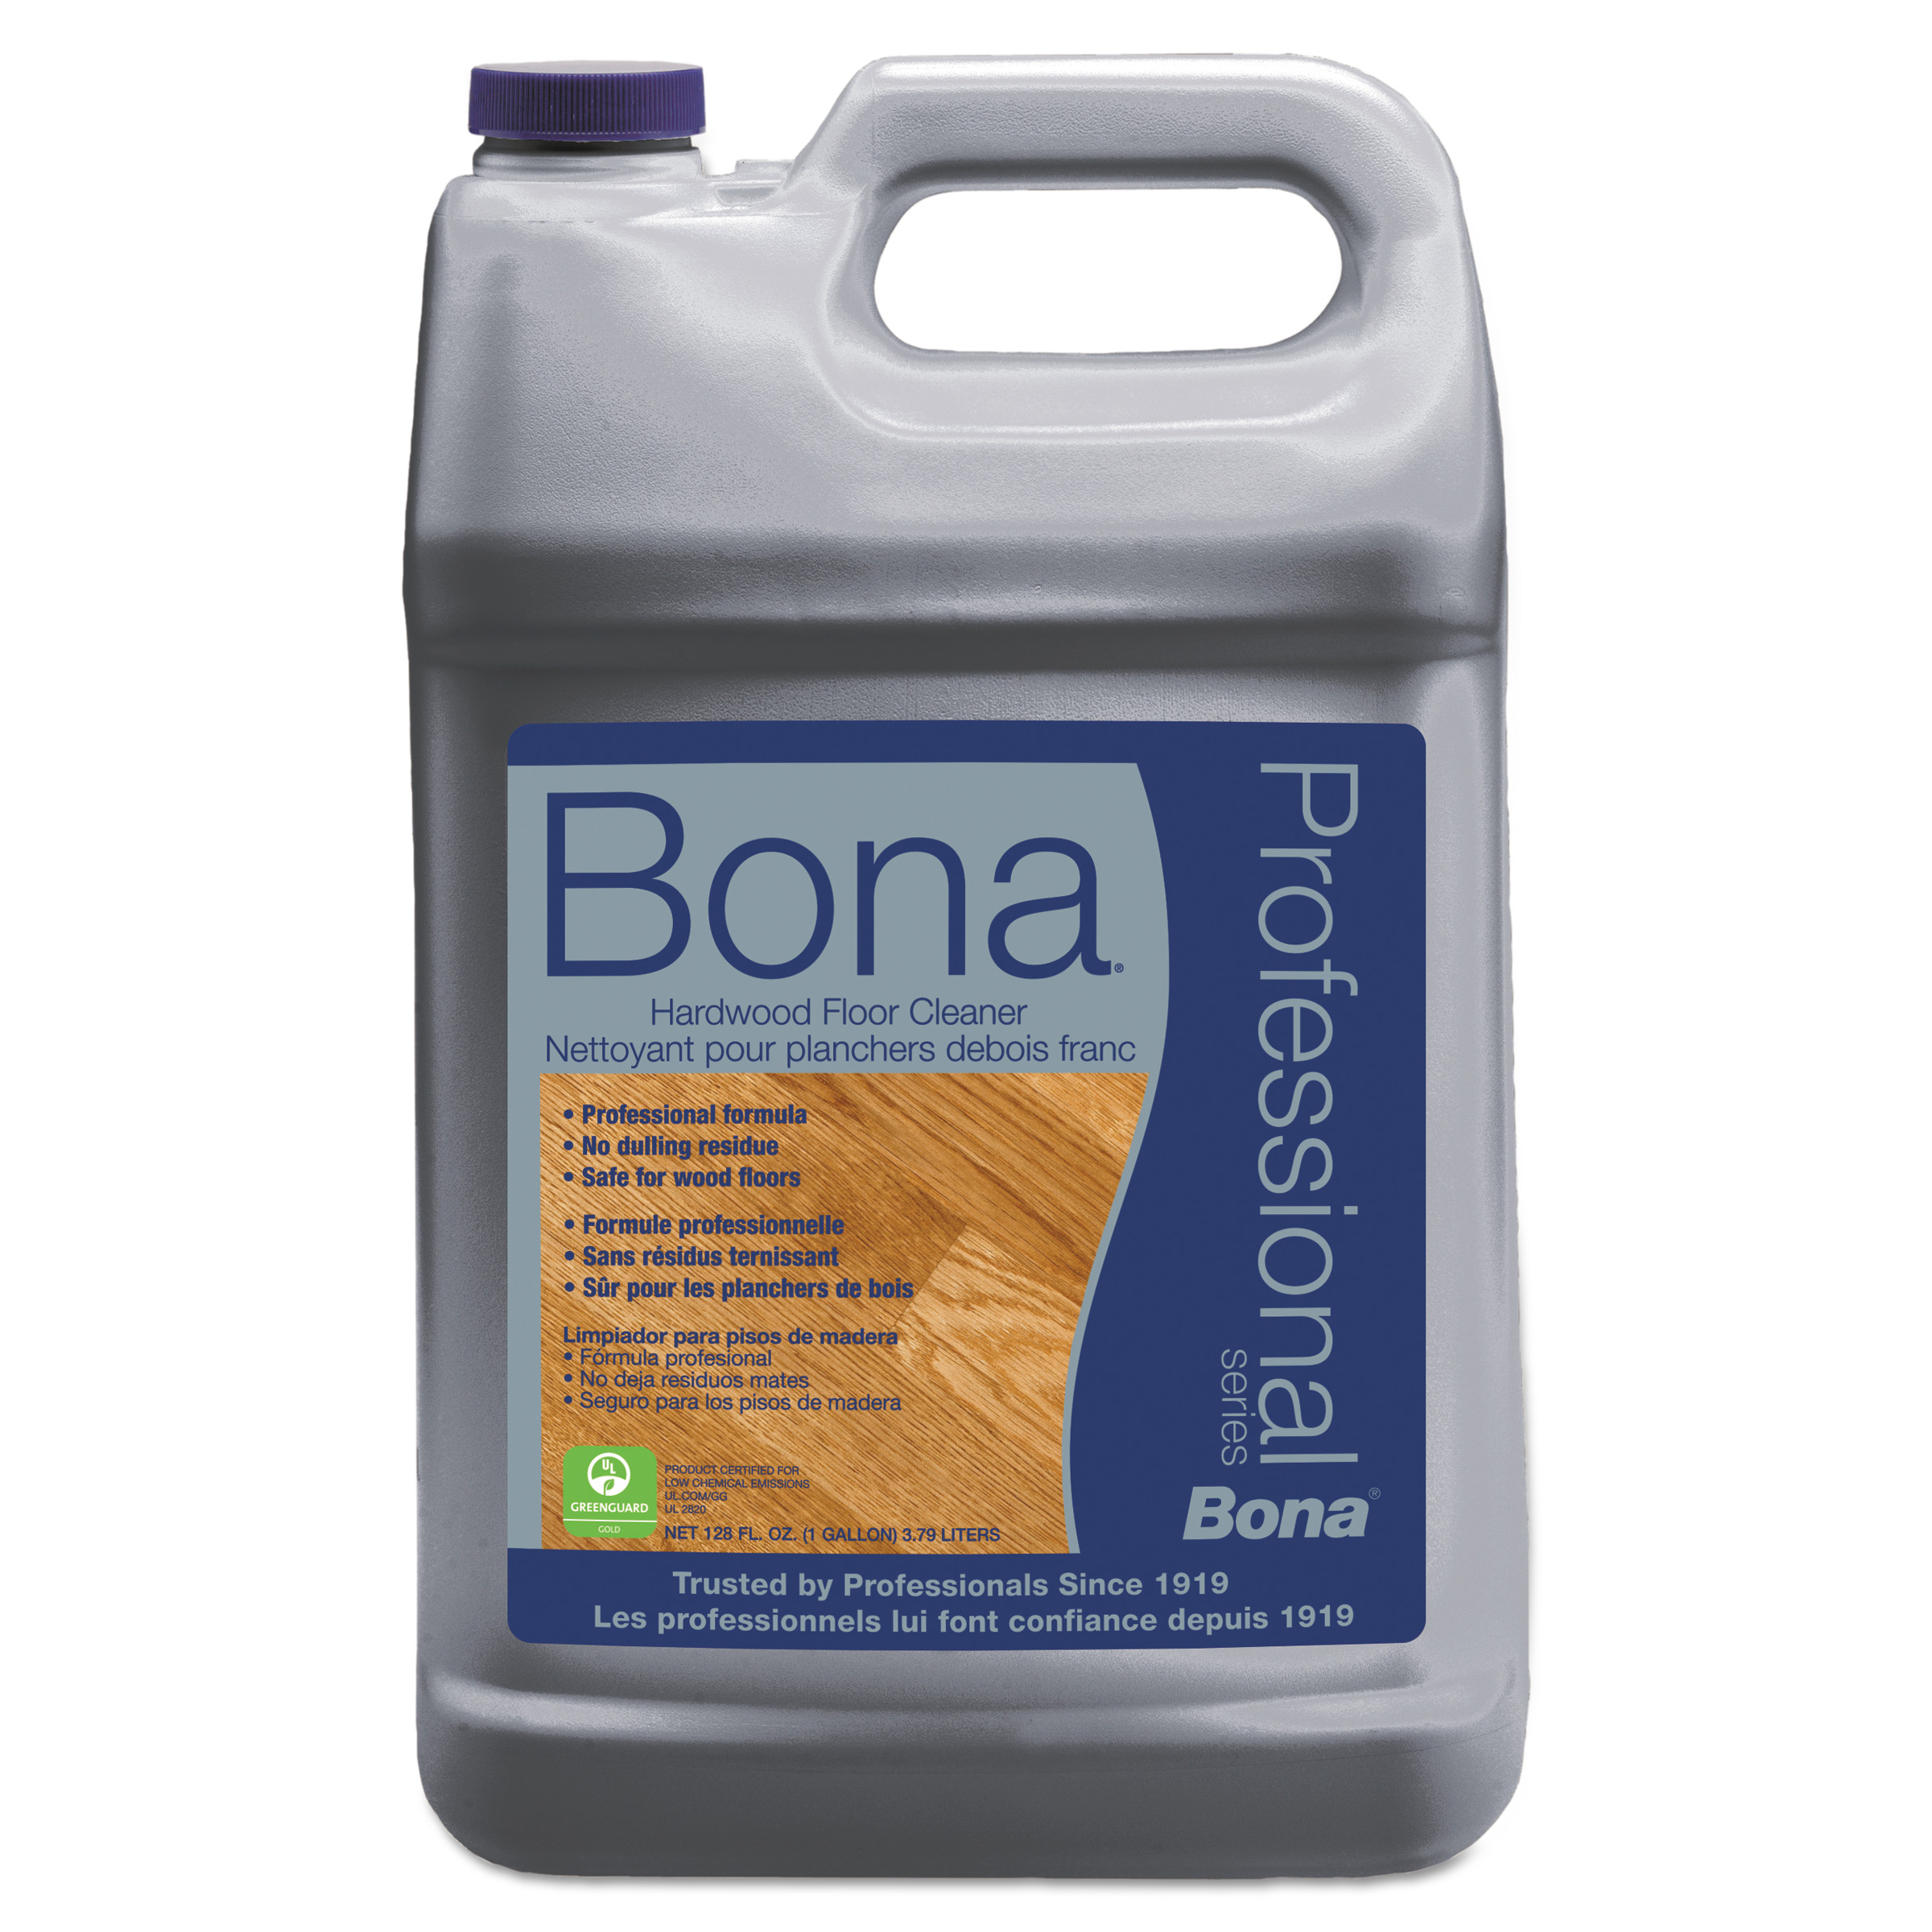 bona hardwood floor cleaner, 1 gal refill bottle - walmart